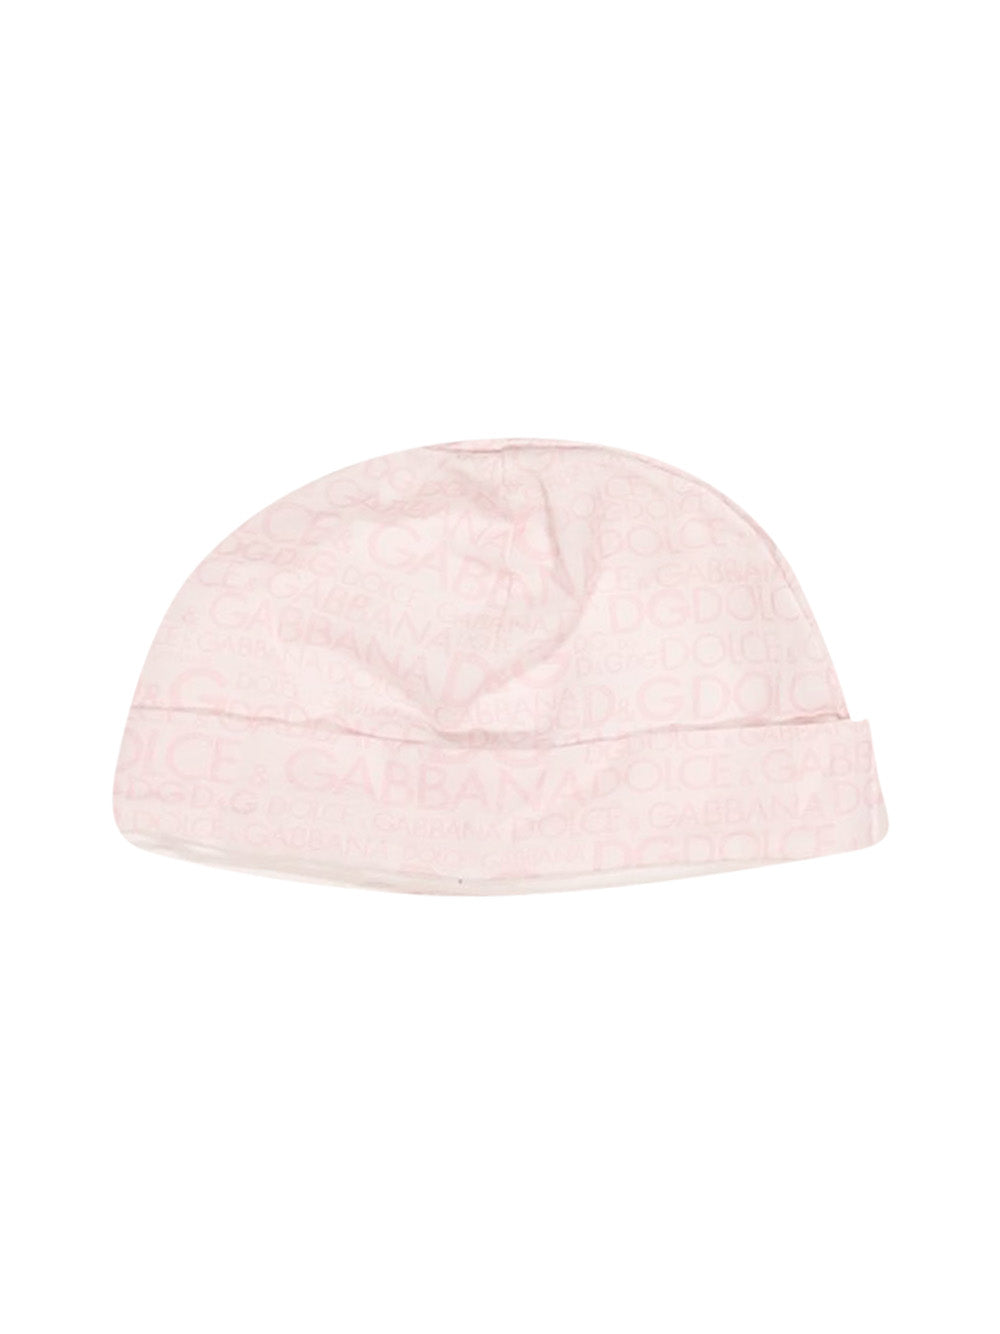 Front photo of Preloved Dolce&Gabbana White Girl's hat - size 1-3 mths